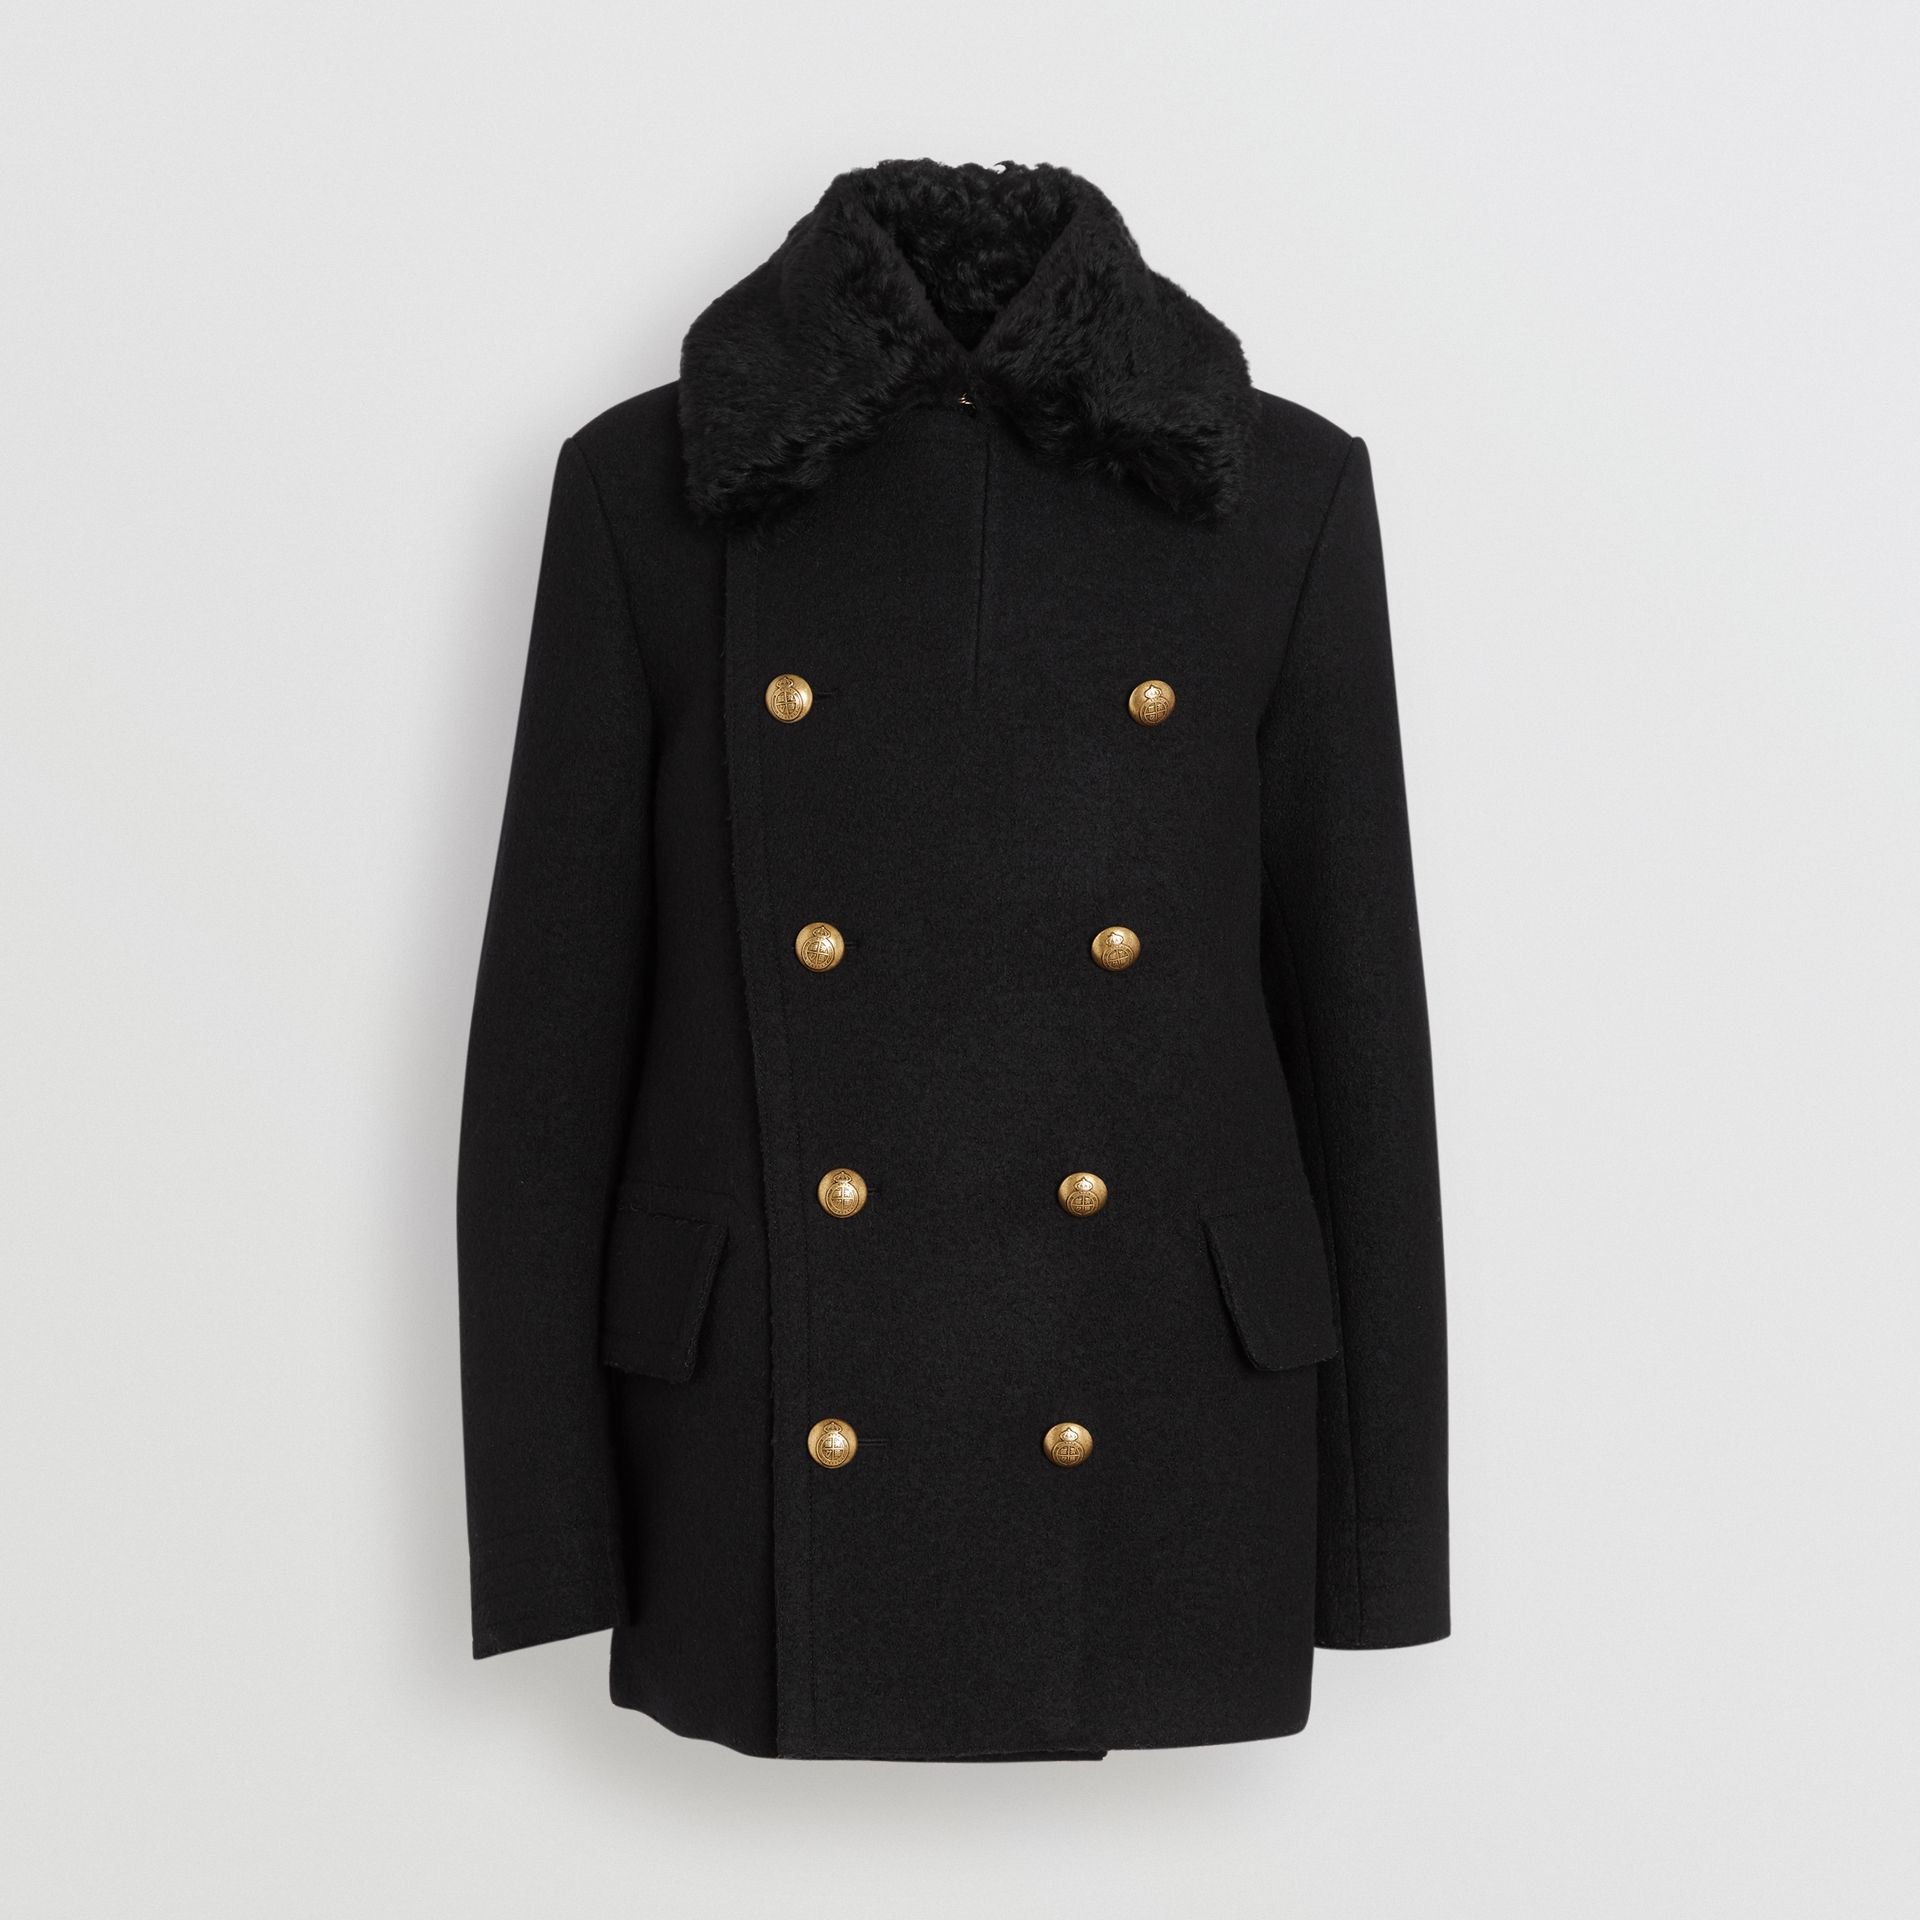 Detachable Shearling Collar Wool Pea Coat in Black - Men | Burberry United States - gallery image 3